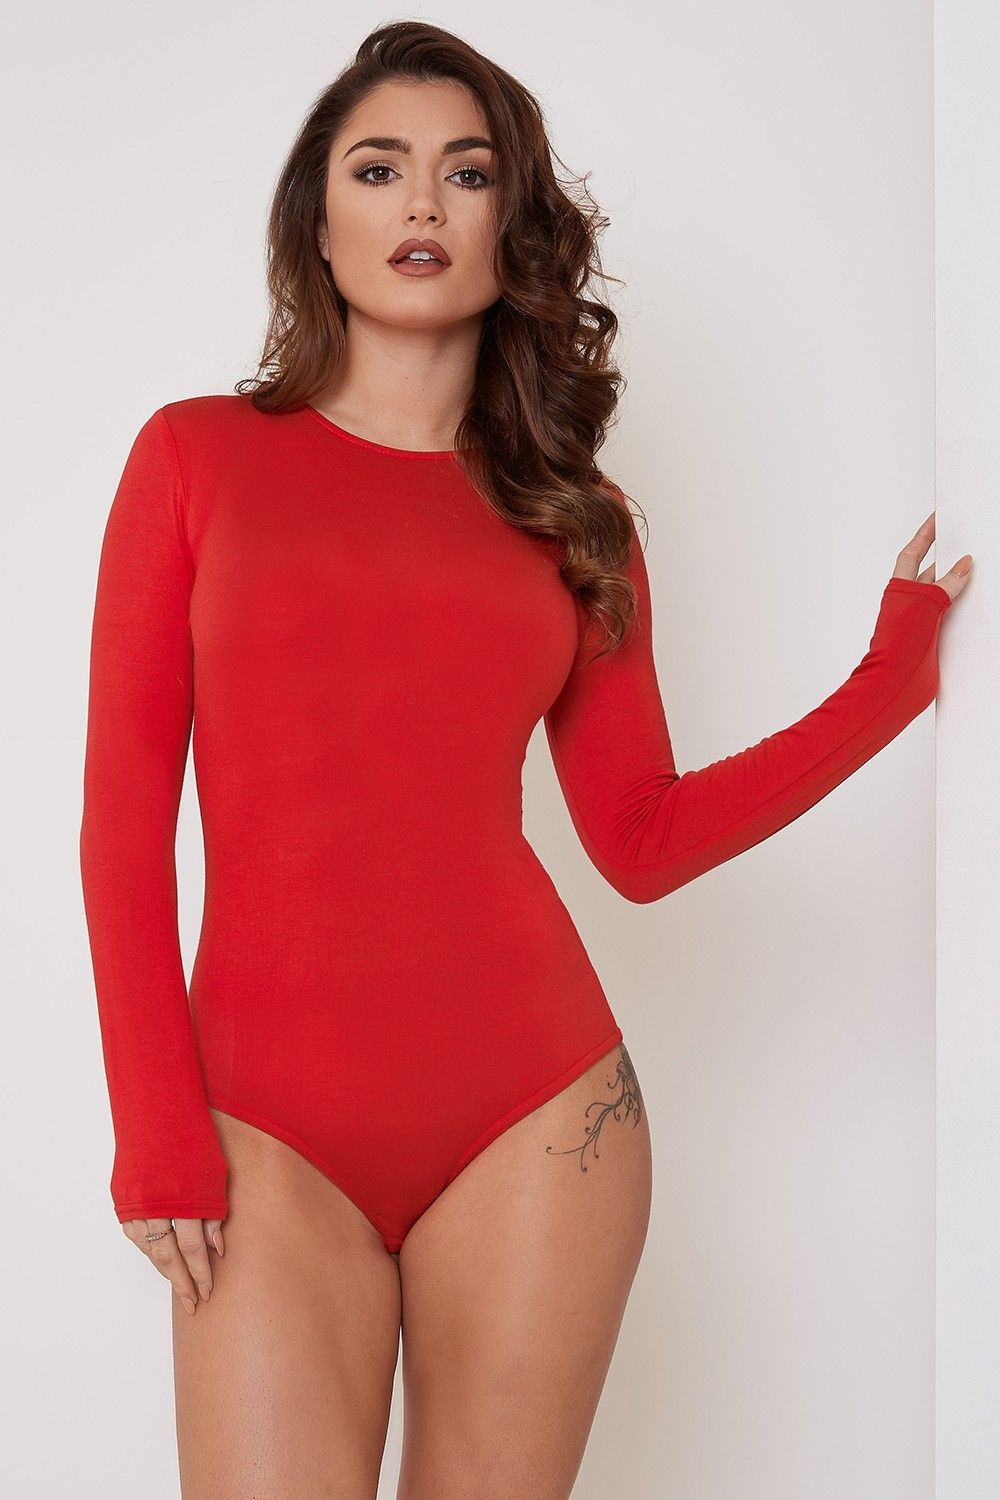 Minimal Effort Long Sleeved Bodysuit Red - Bodysuits - Shop by Category -  Clothing  27d224b19